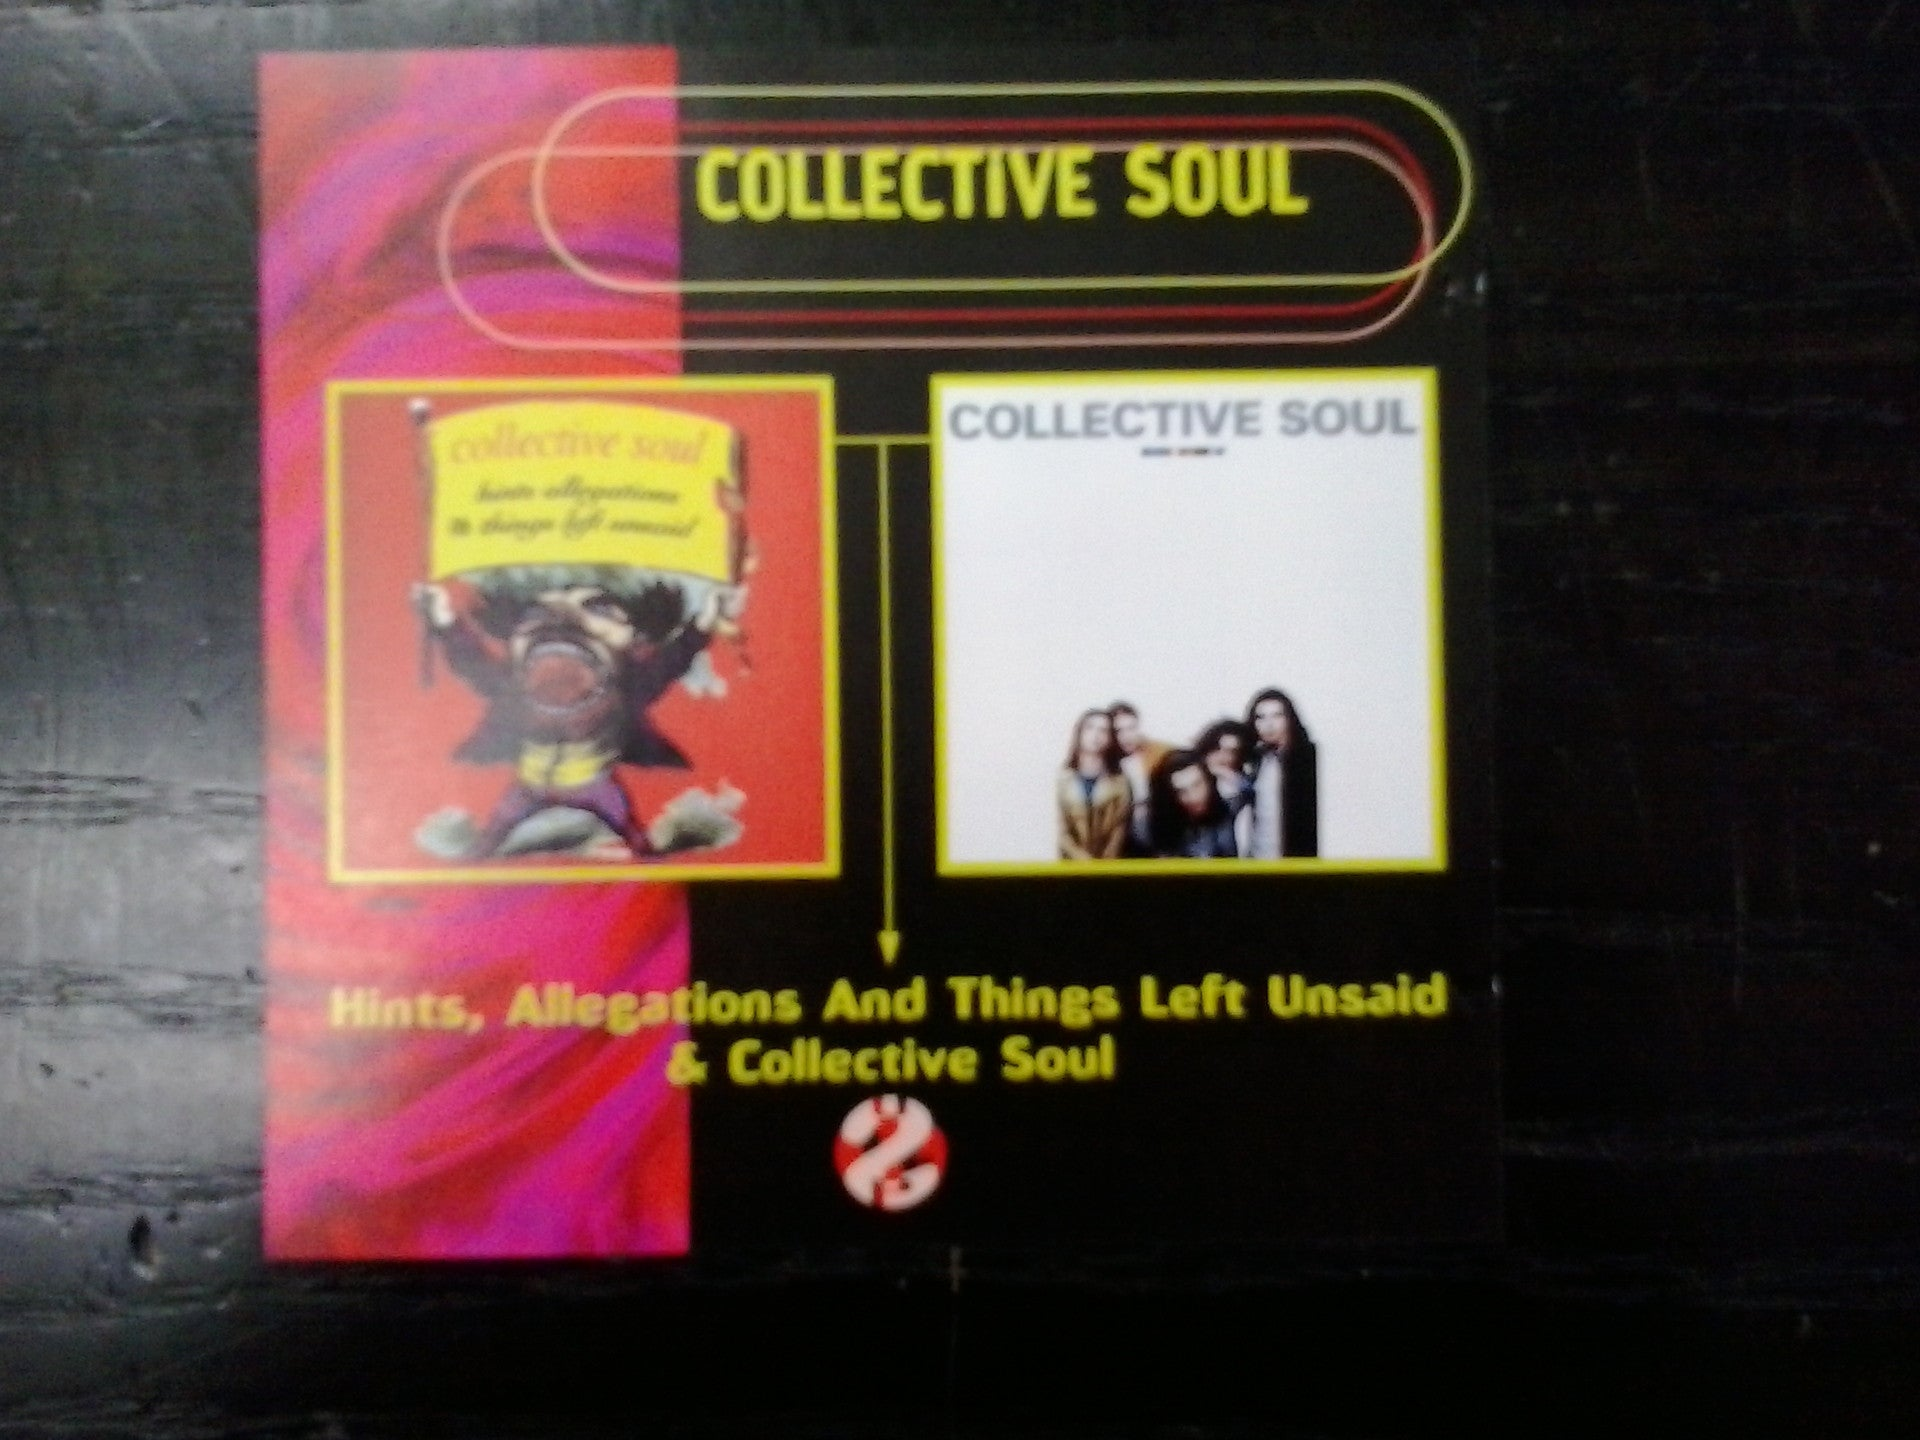 COLLECTIVE SOUL-HINTS, ALLEGATIONS...+ COLLECTIVE SOUL 2CD VG+